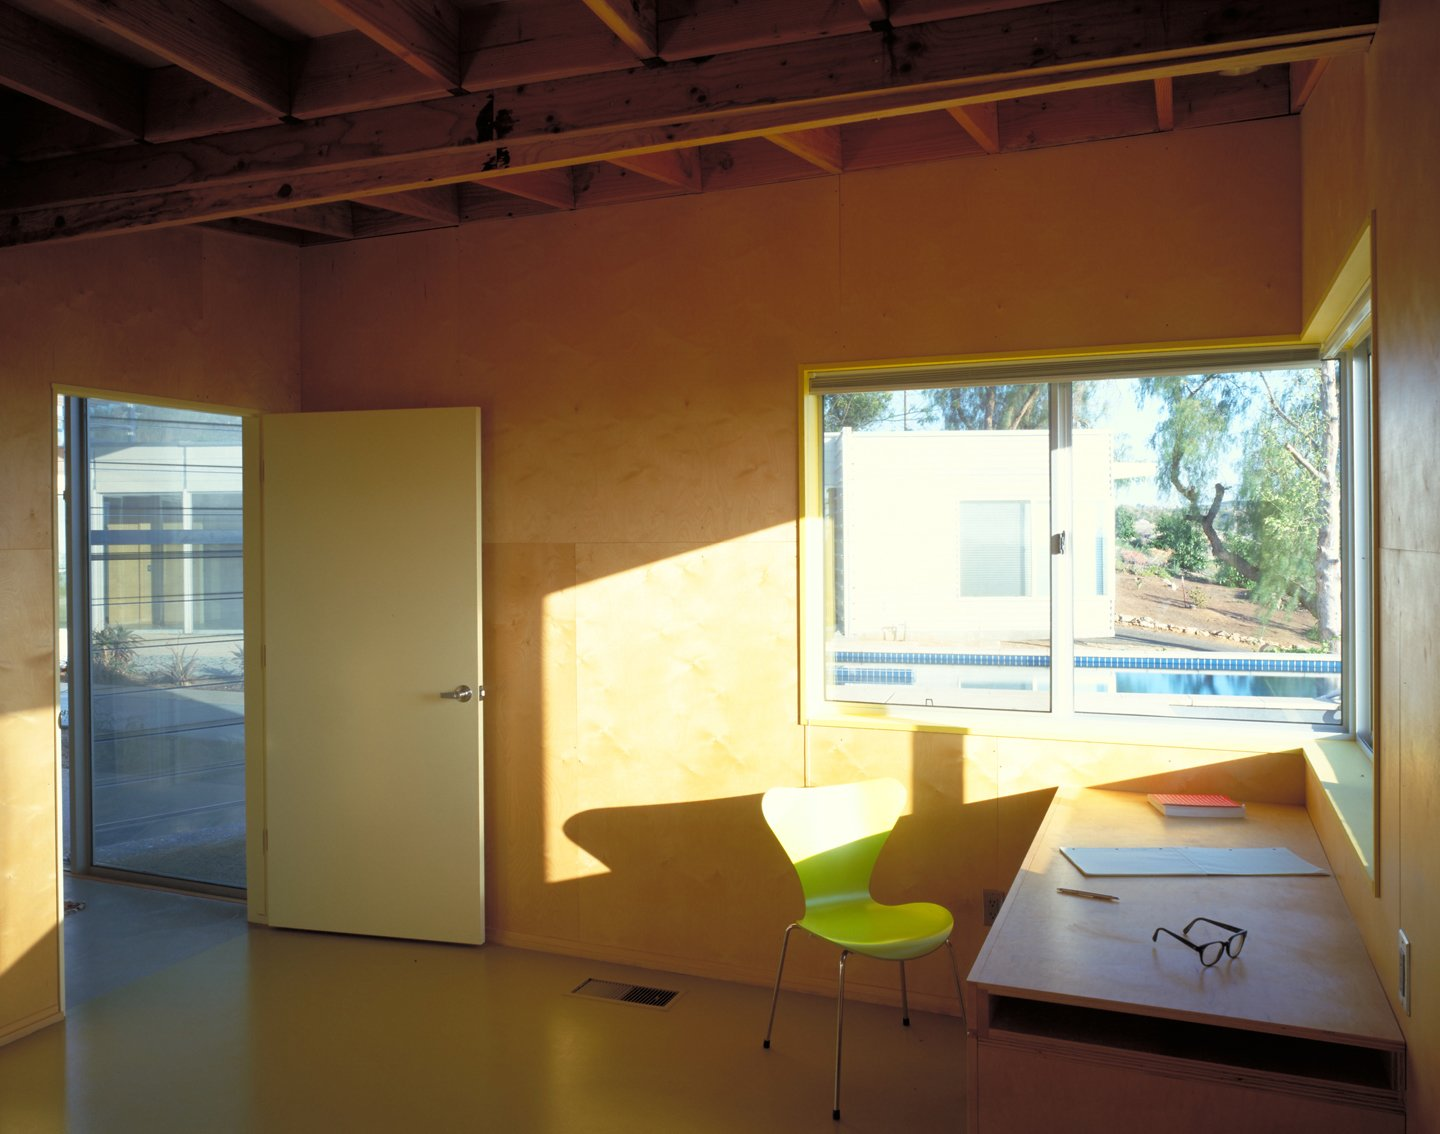 #workplace #office #chair #desk #window #light #view #eco #green #sustainable #ValleyCenter #California #KevinDalyArchitects  Valley Center House